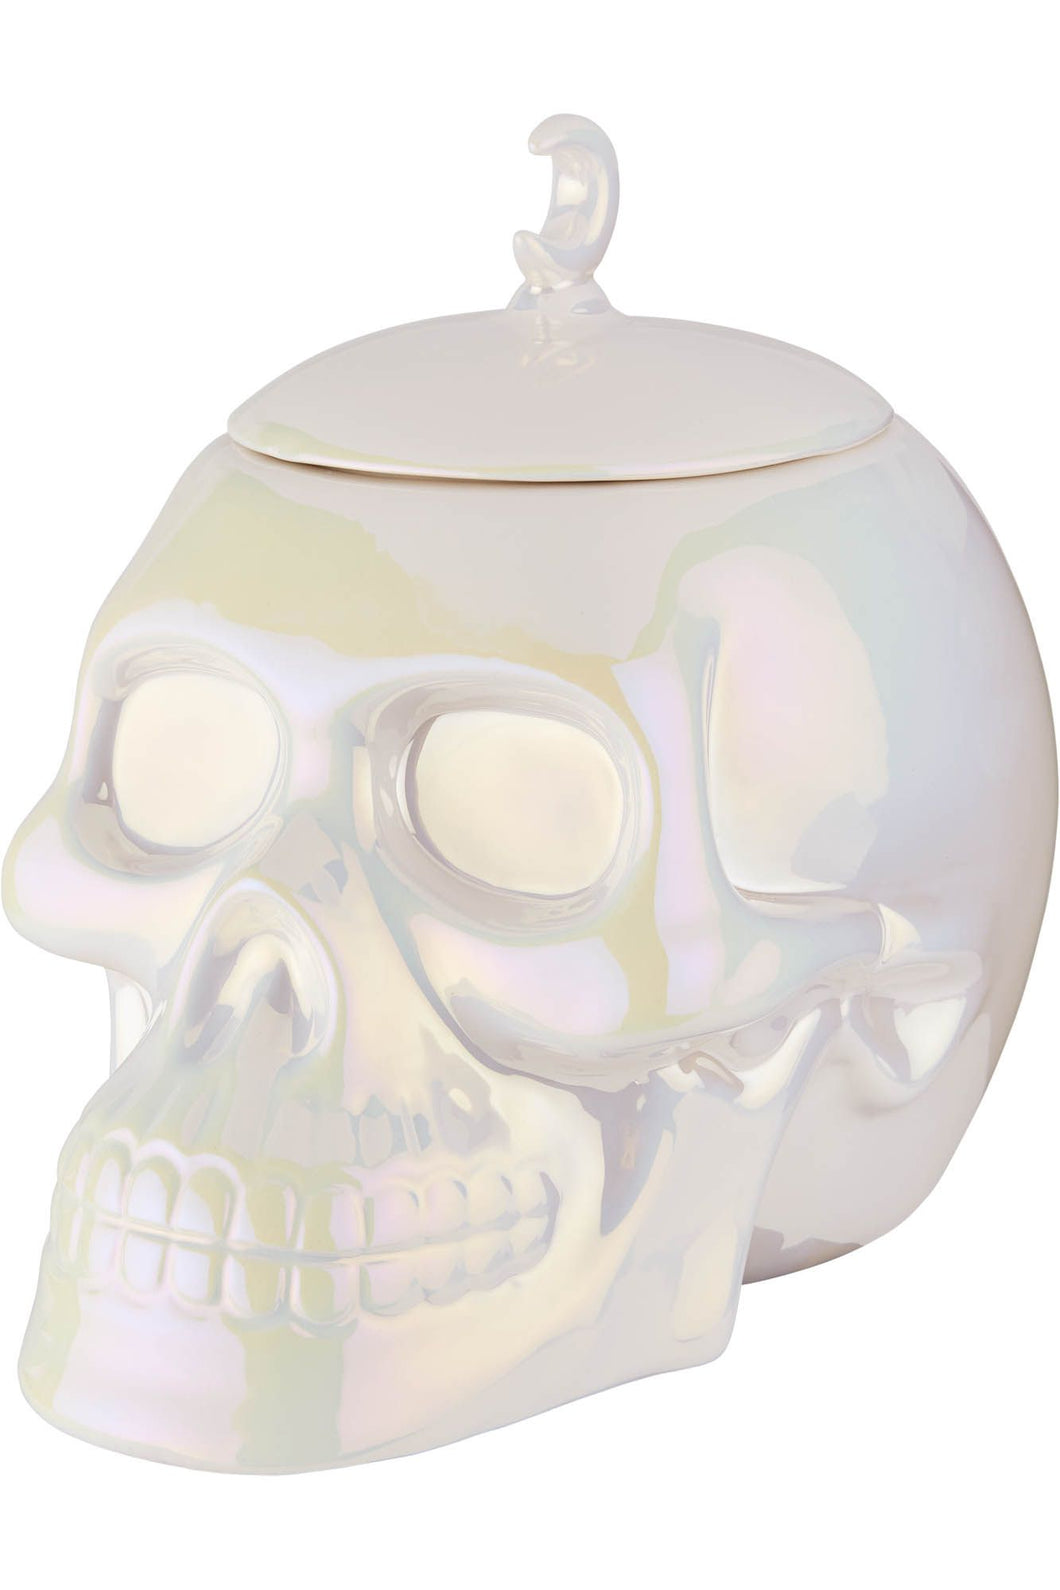 Killstar White Aura Cookie Jar - Kate's Clothing